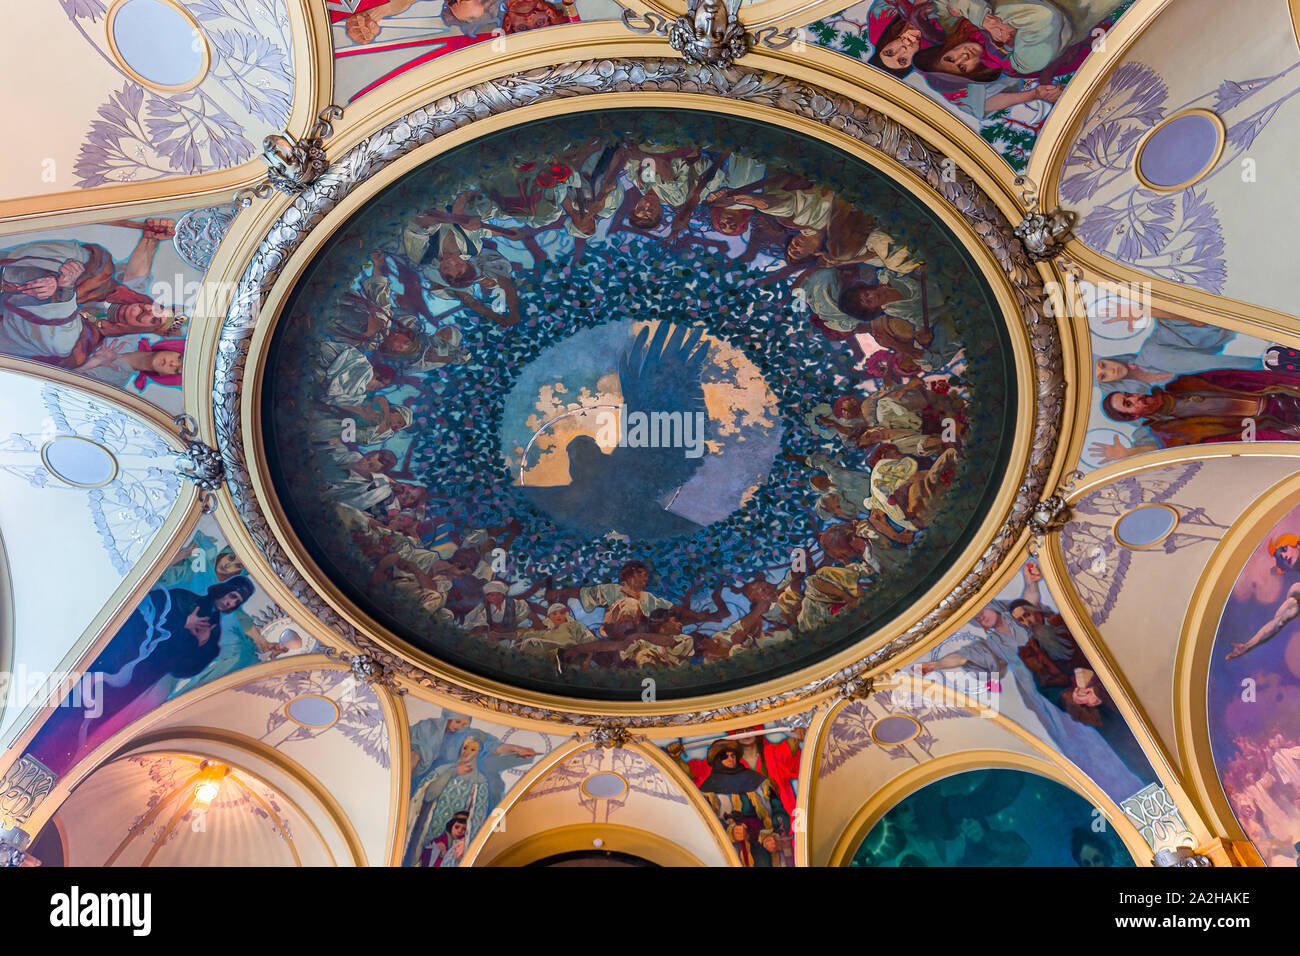 PRAGUE, CZECH REPUBLIC, SEPTEMBER 12 : Art deco interiors of the municipal house, Obecni Dum, september 12, 2019 in Prague, czech republic Stock Photo